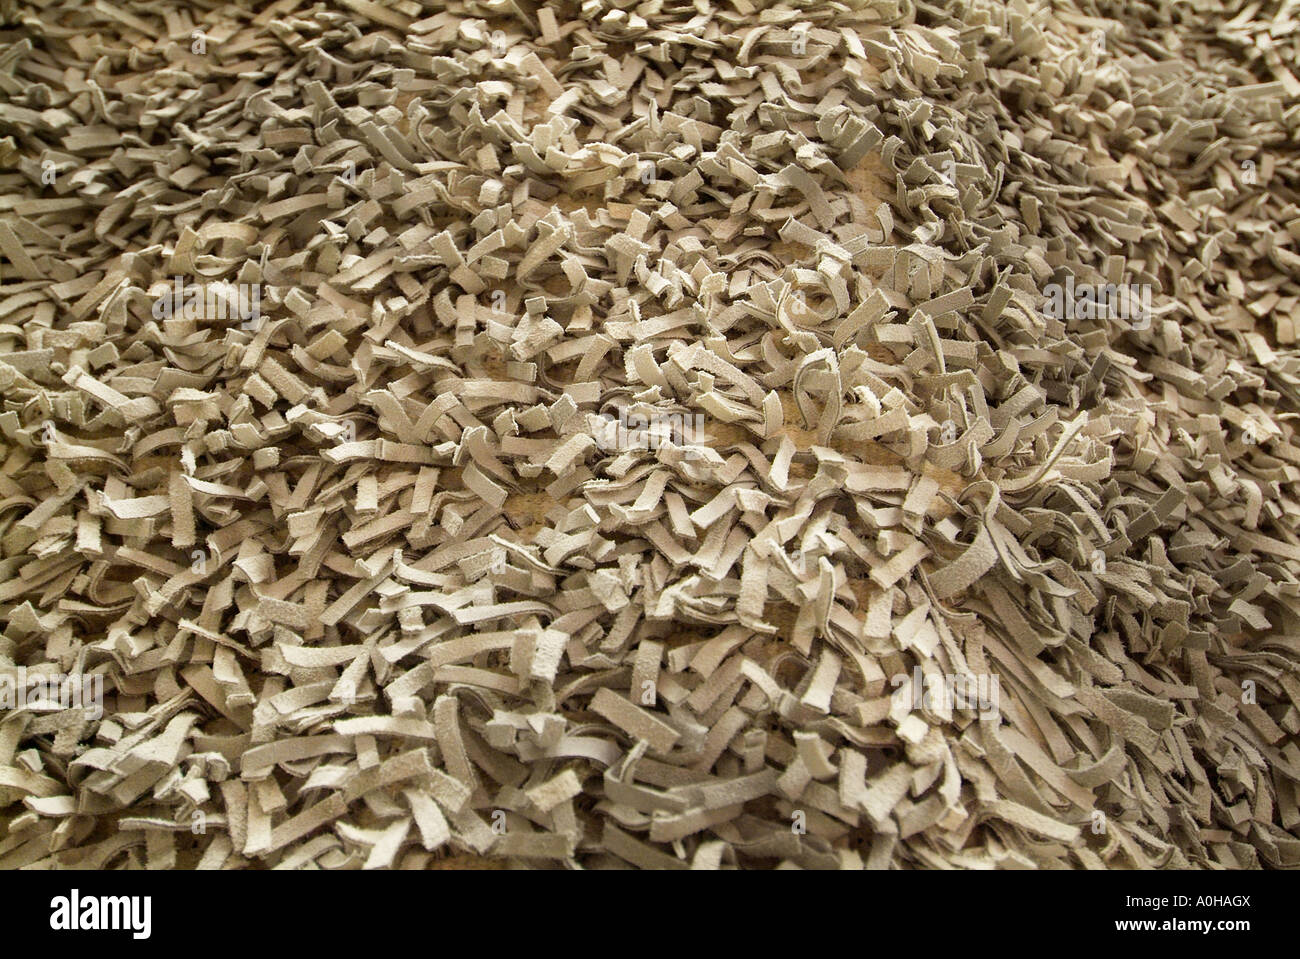 Chunky shag texture tan buff brown thick pile Carpet rug Fabric wool cotton weave woven warp weft weave local alternative - Stock Image